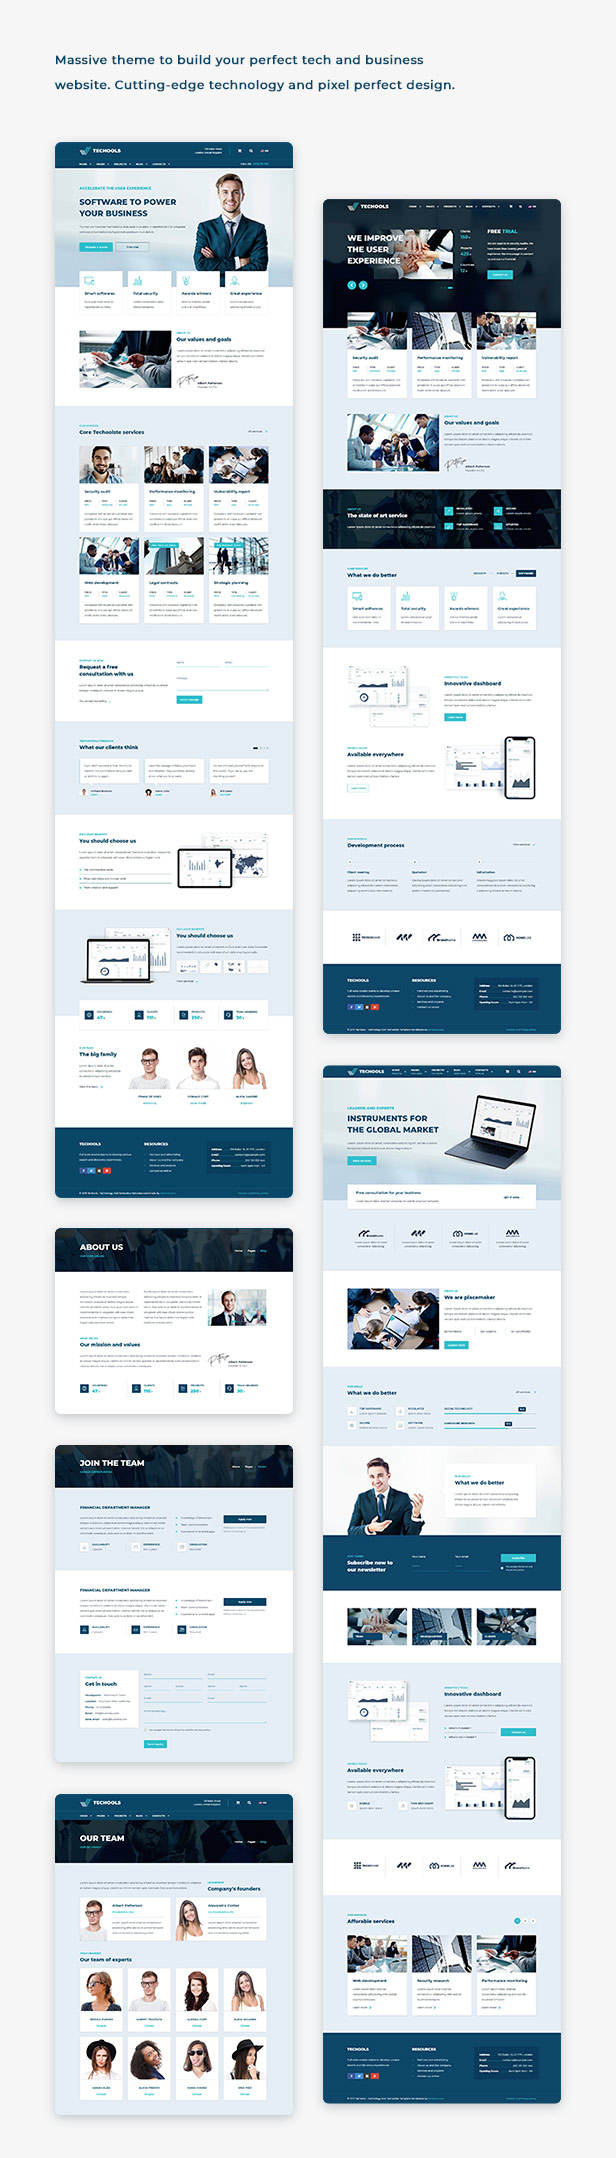 Execoore - Technology And Fintech Theme - 1